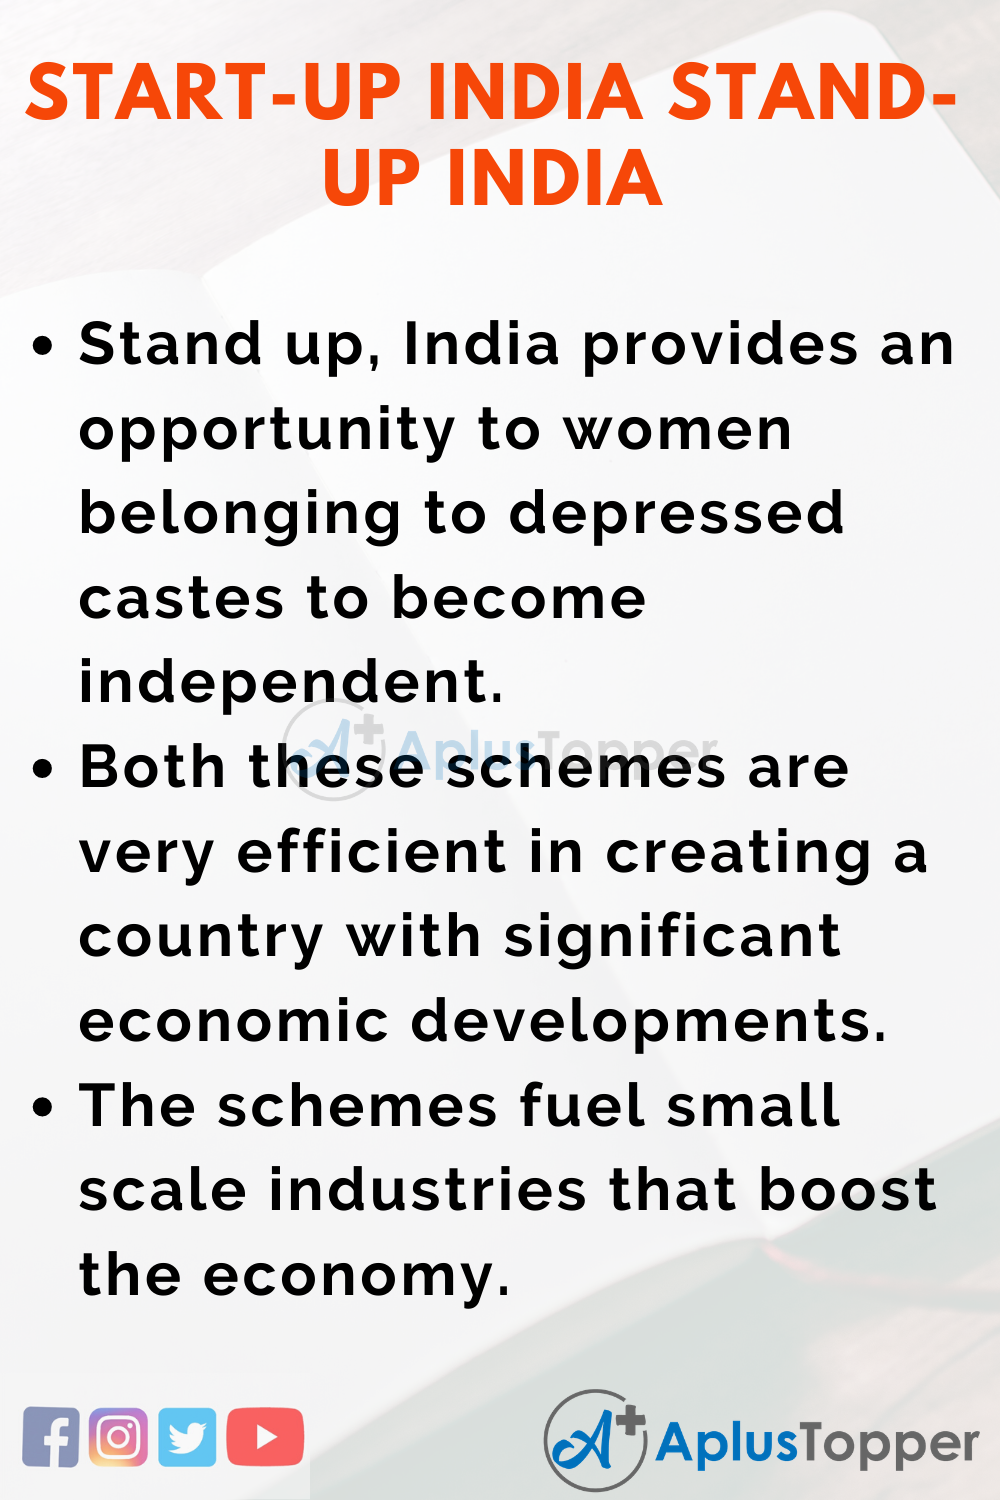 Essay on Start-Up India Stand-Up India